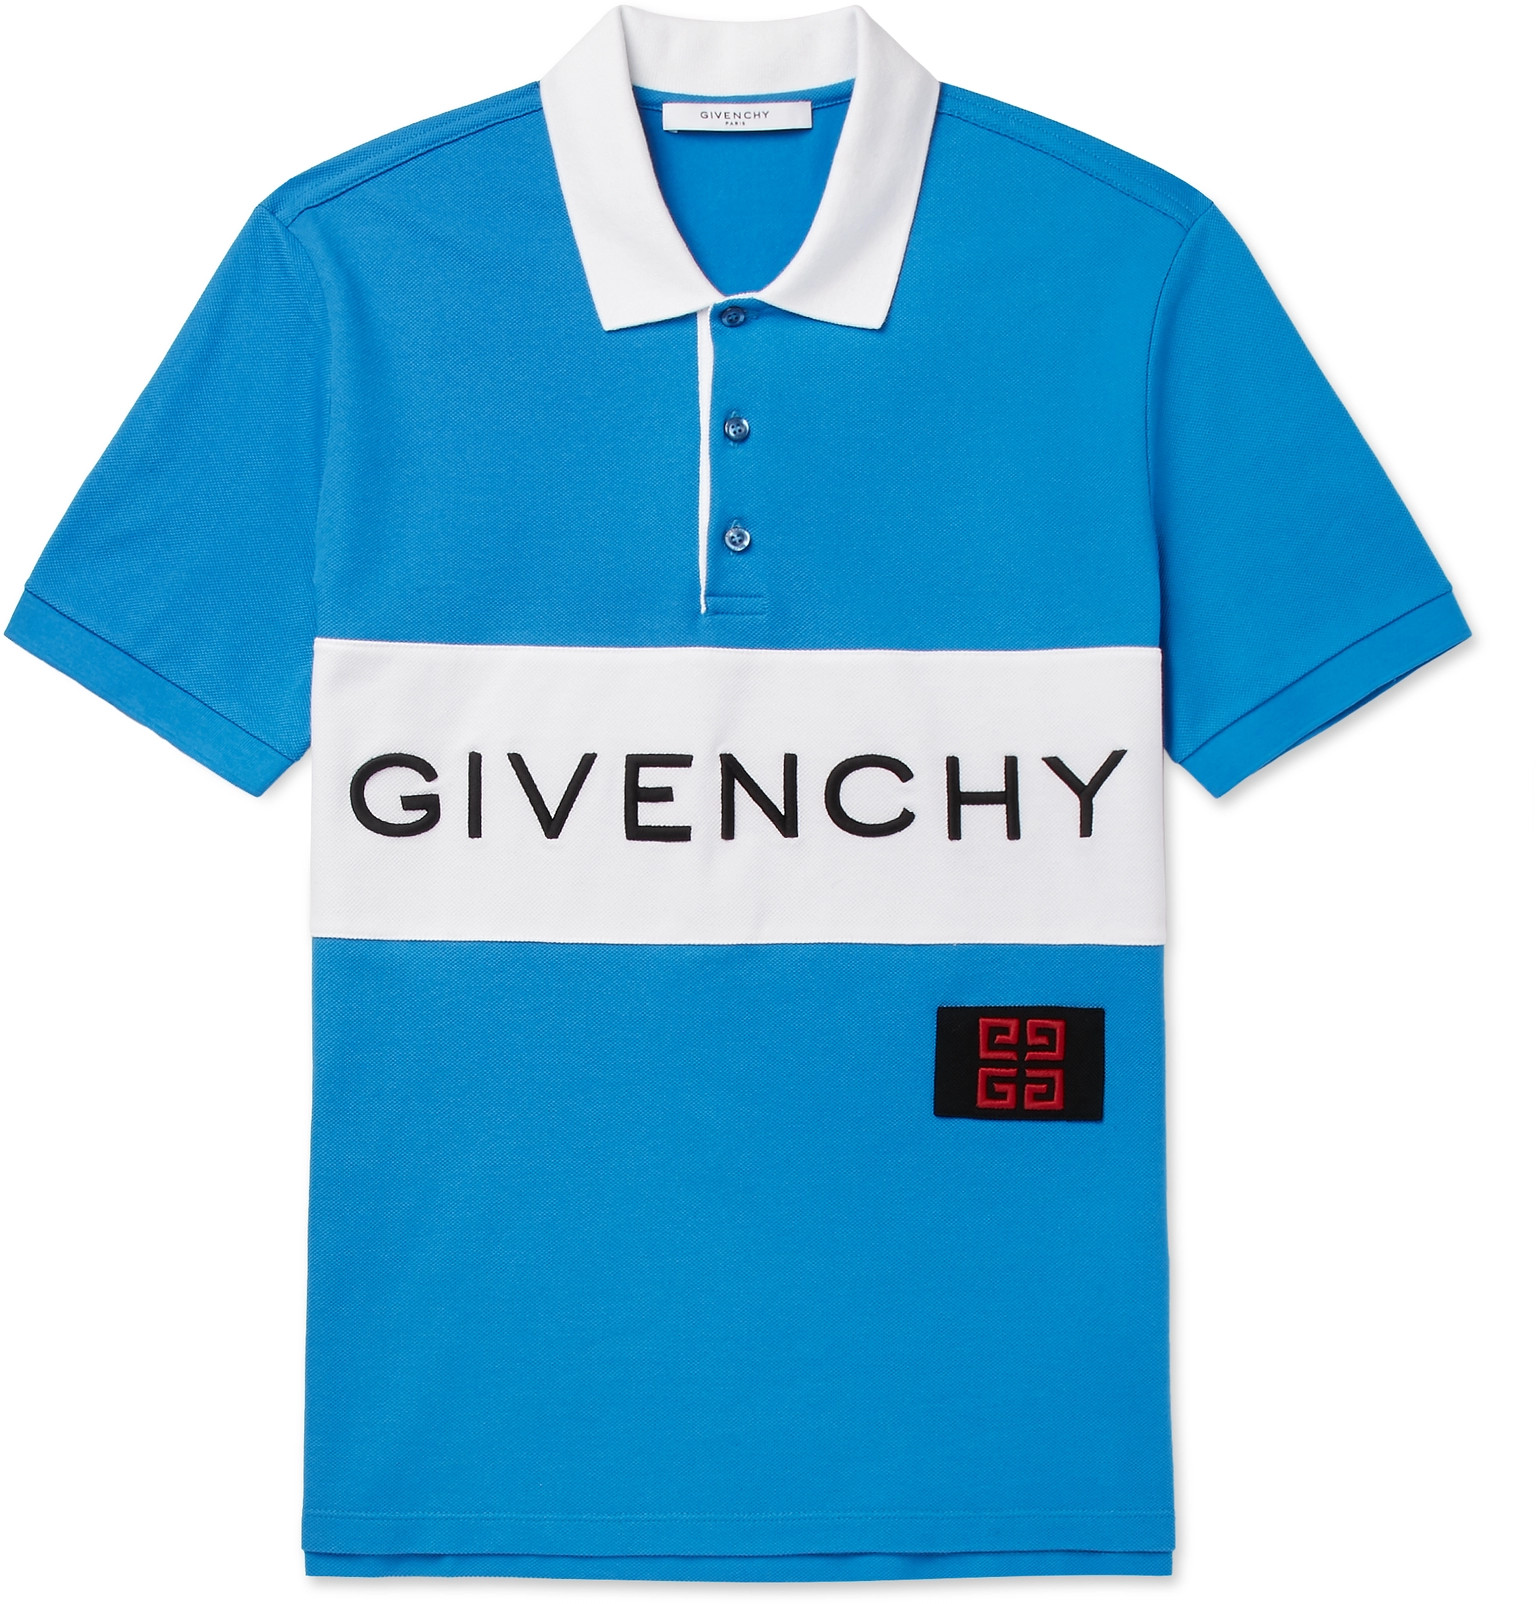 Givenchy - Slim-Fit Logo-Embroidered Cotton-Piqué Polo Shirt 7b44b9d78a10